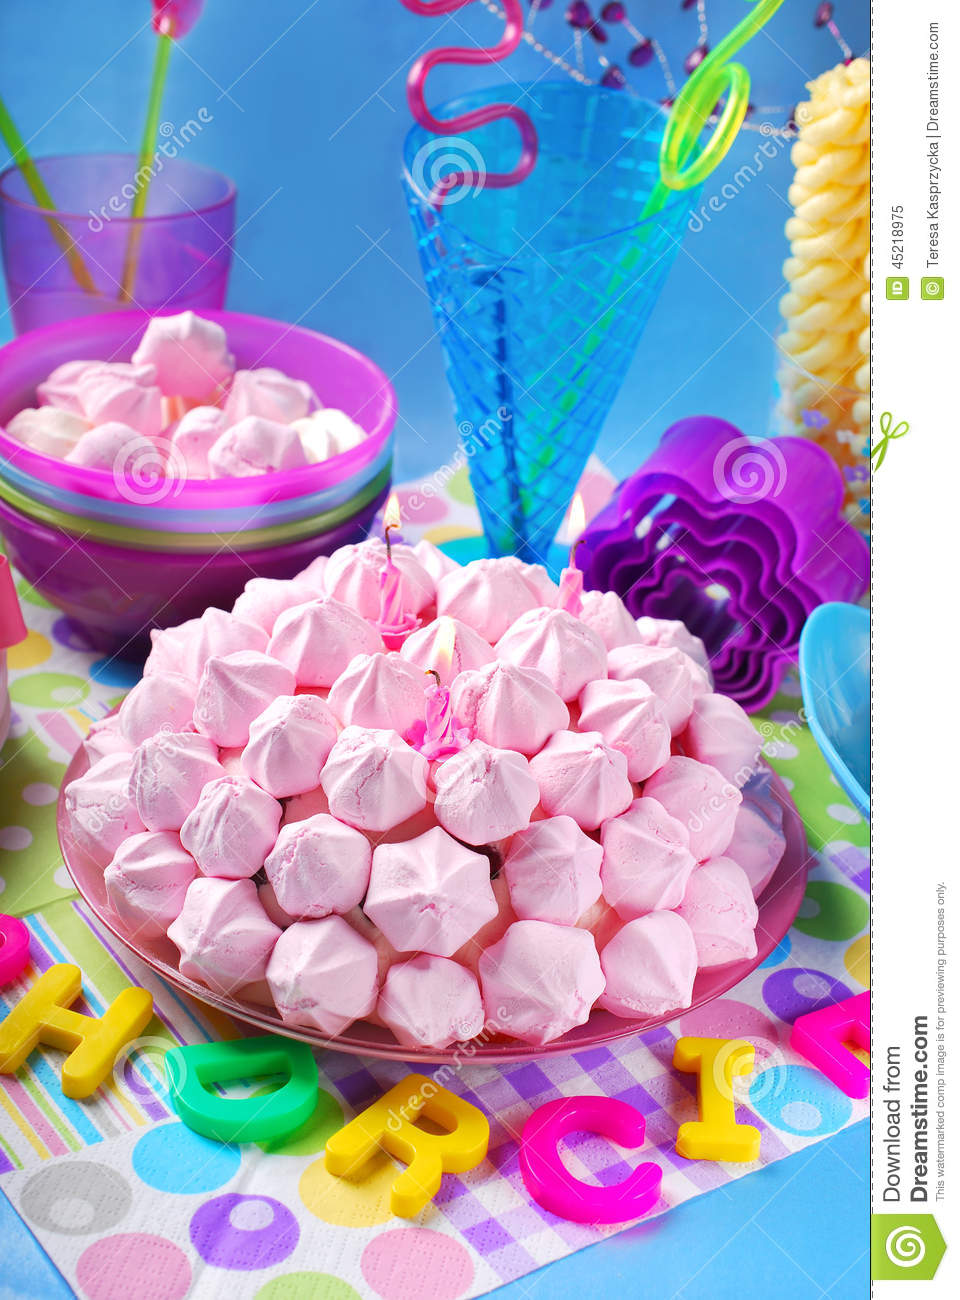 Birthday Cake With Pink Meringues And Candles Stock Photo